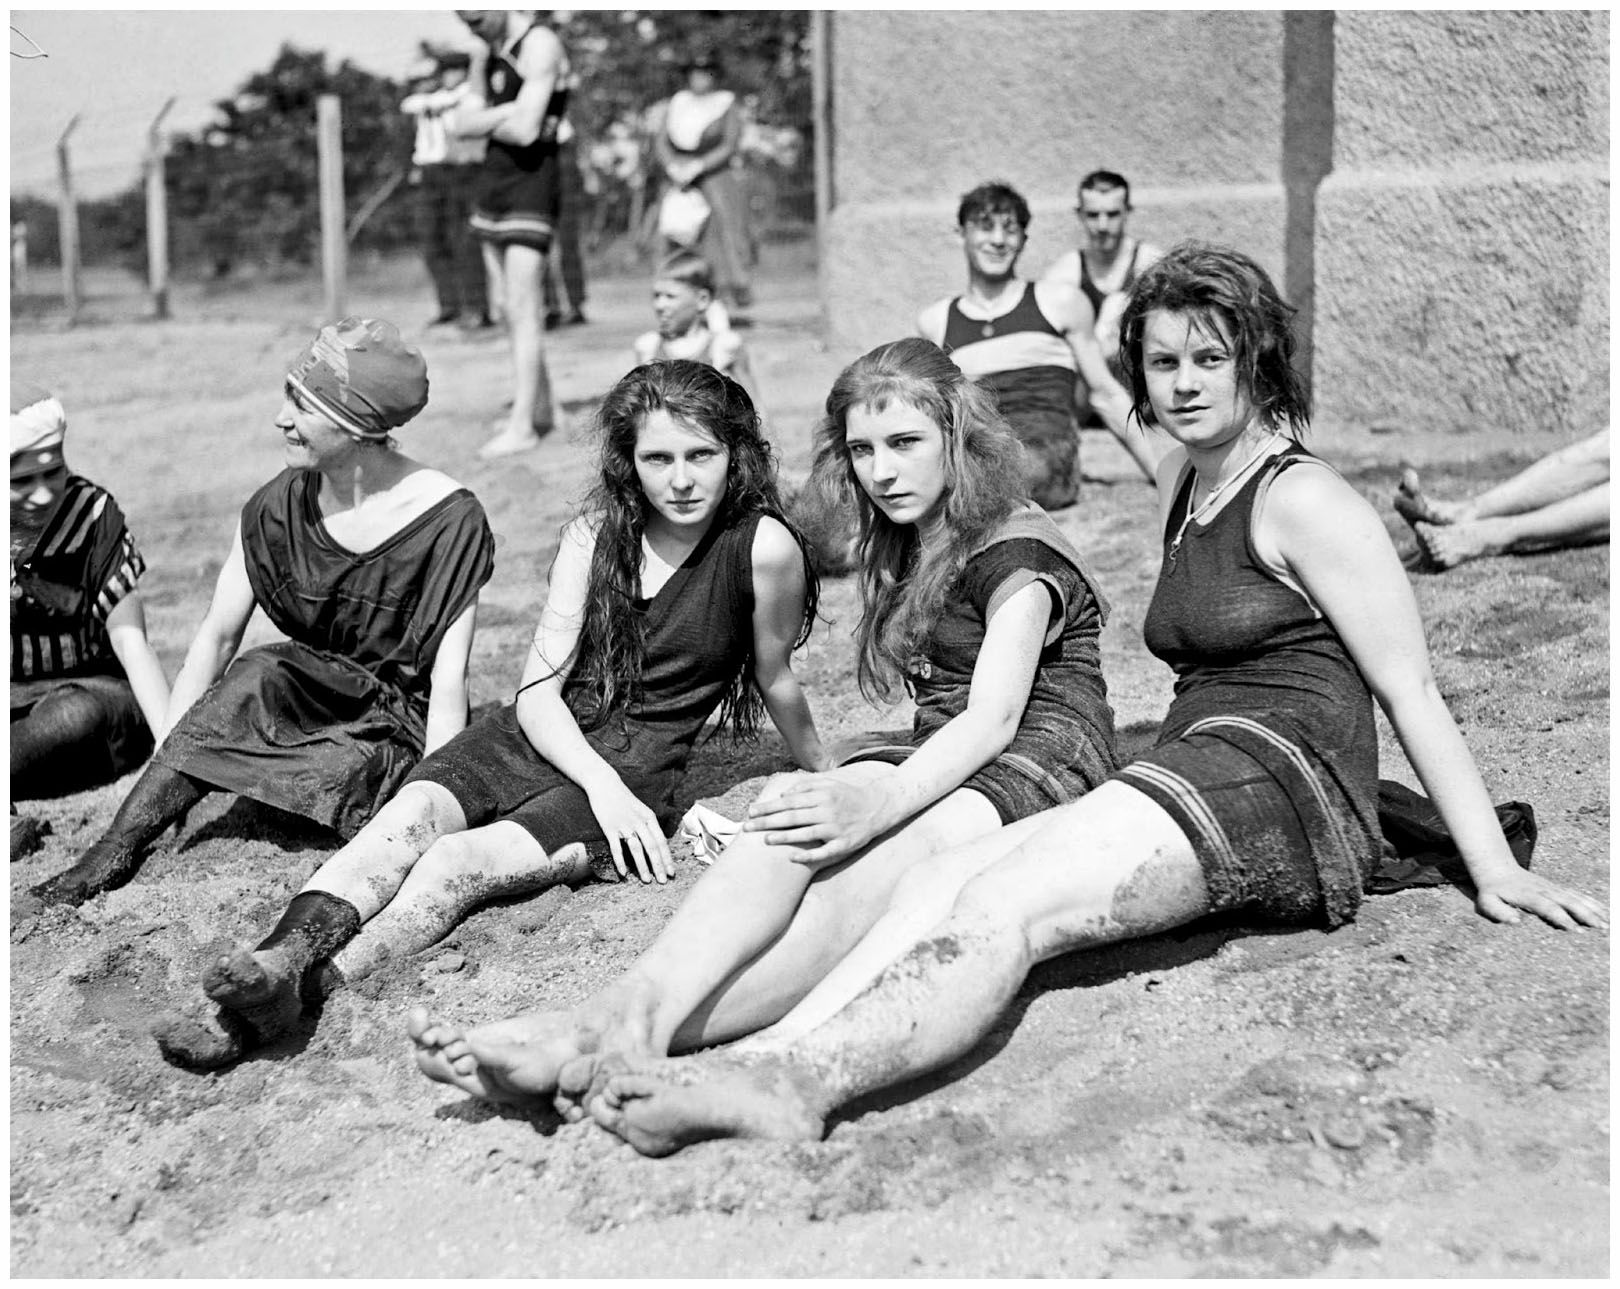 Norma Kamali Costumi Da Bagno Bathing Beach 1920 39s Pleasurephotoroom Wordpress